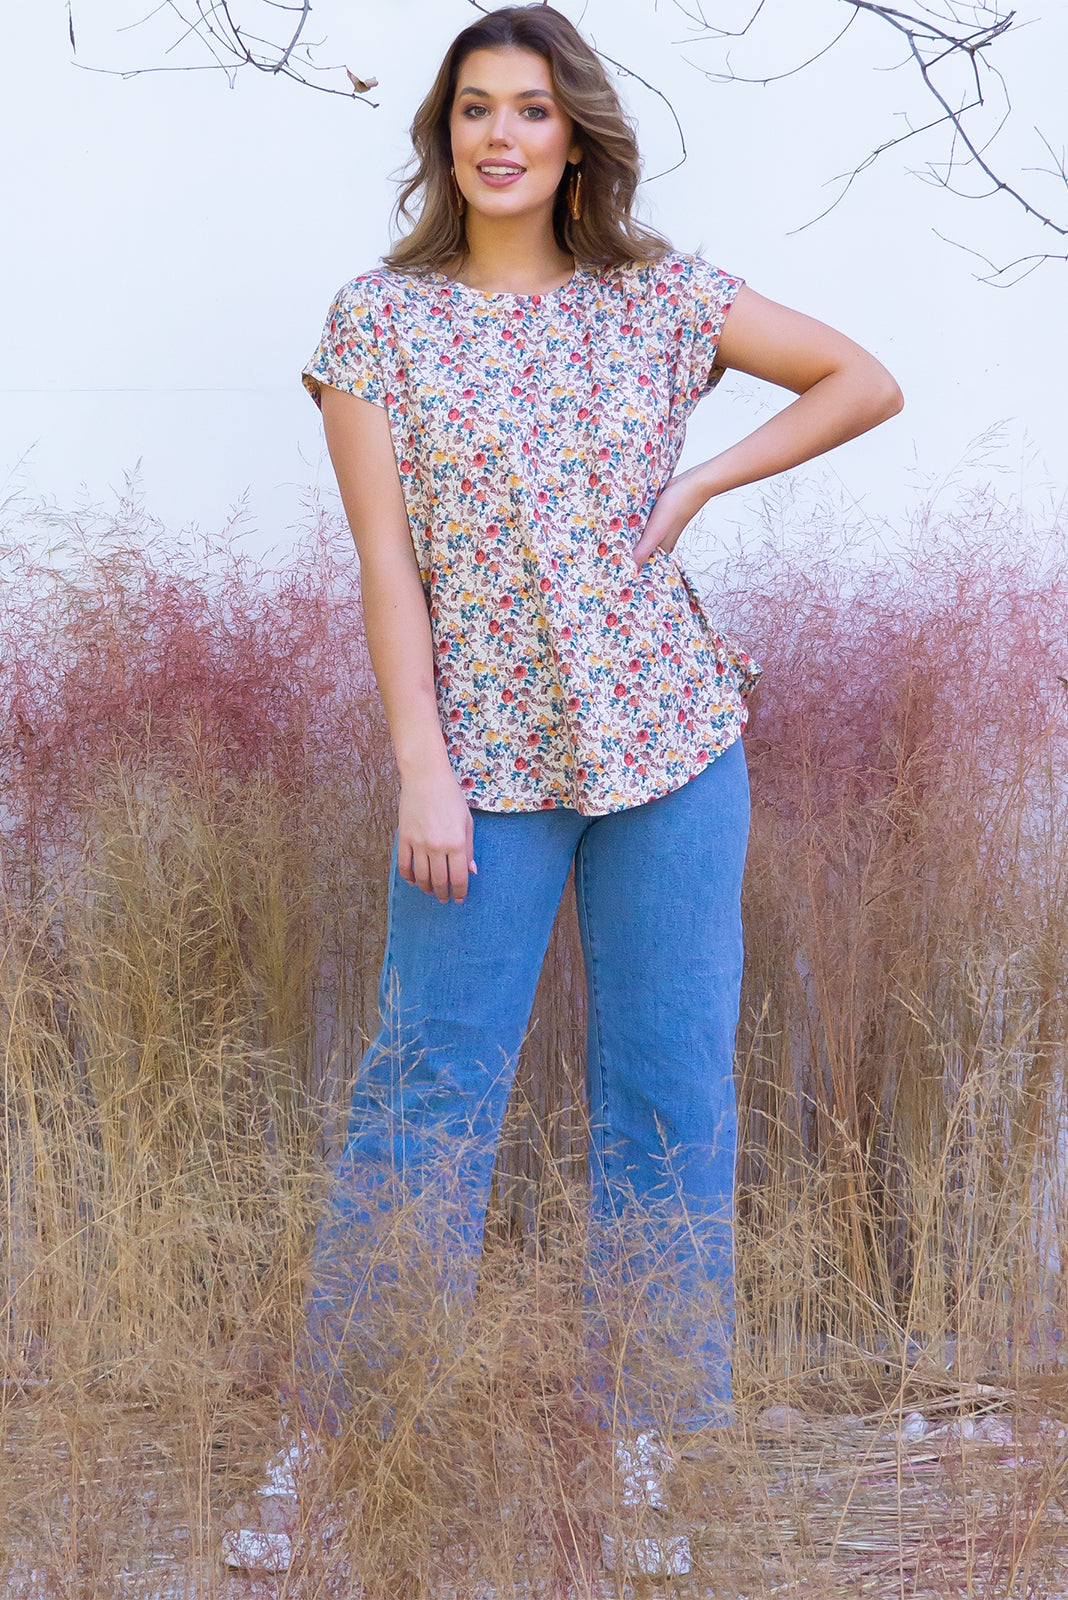 Phoenix Antique Roses short sleeve tshirt has a relaxed fit and is made of soft cotton polyester fabric with a scoop neckline and cap sleeve in a warm cream antique roses print